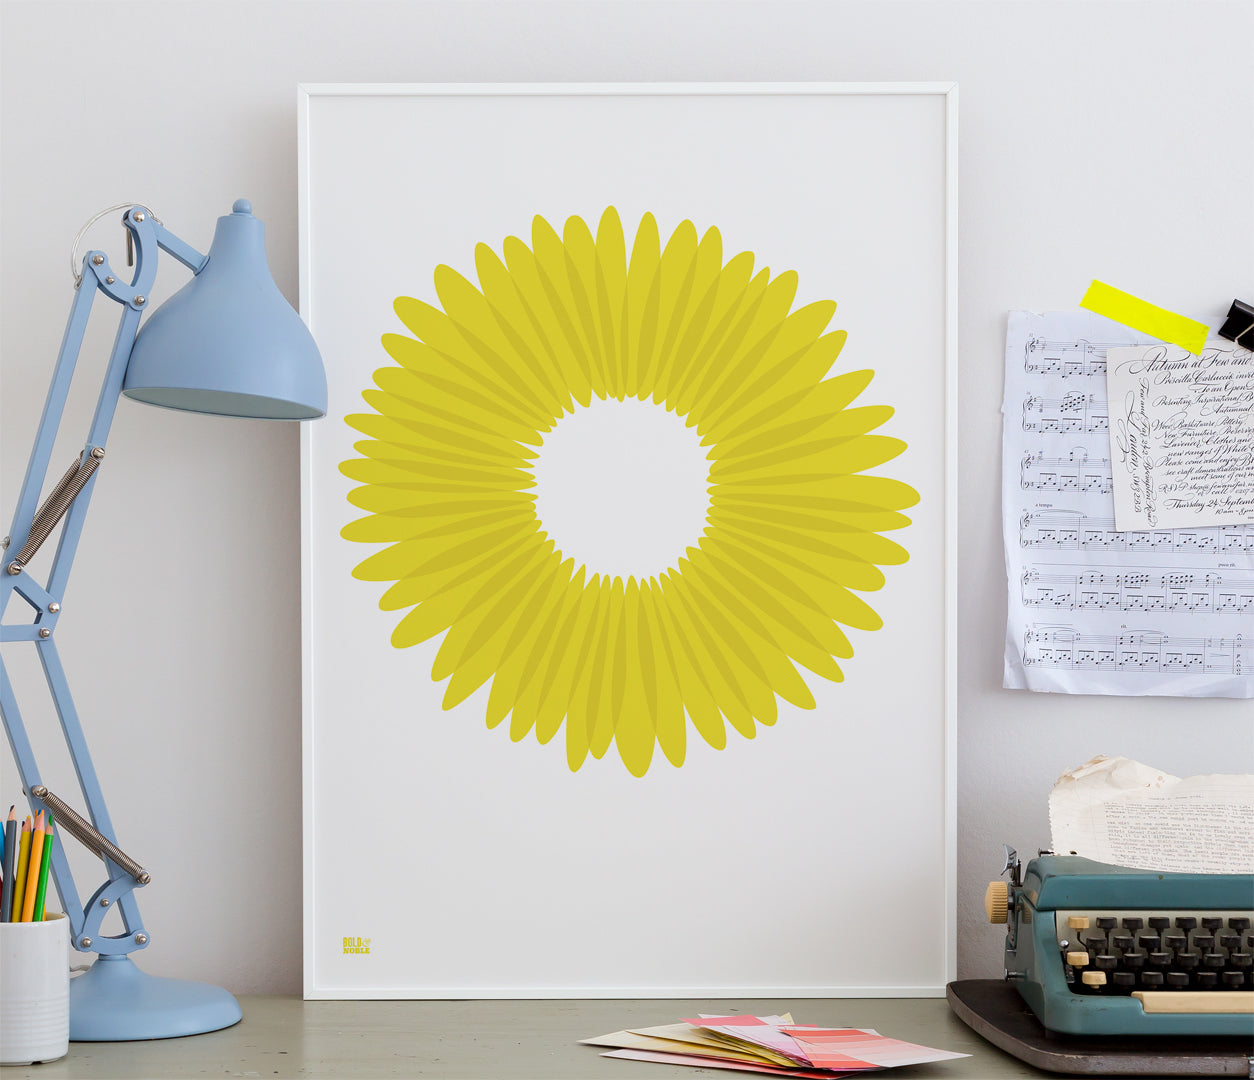 Wall Art ideas: Economical Screen Prints, Daisy Petals in bright yellow